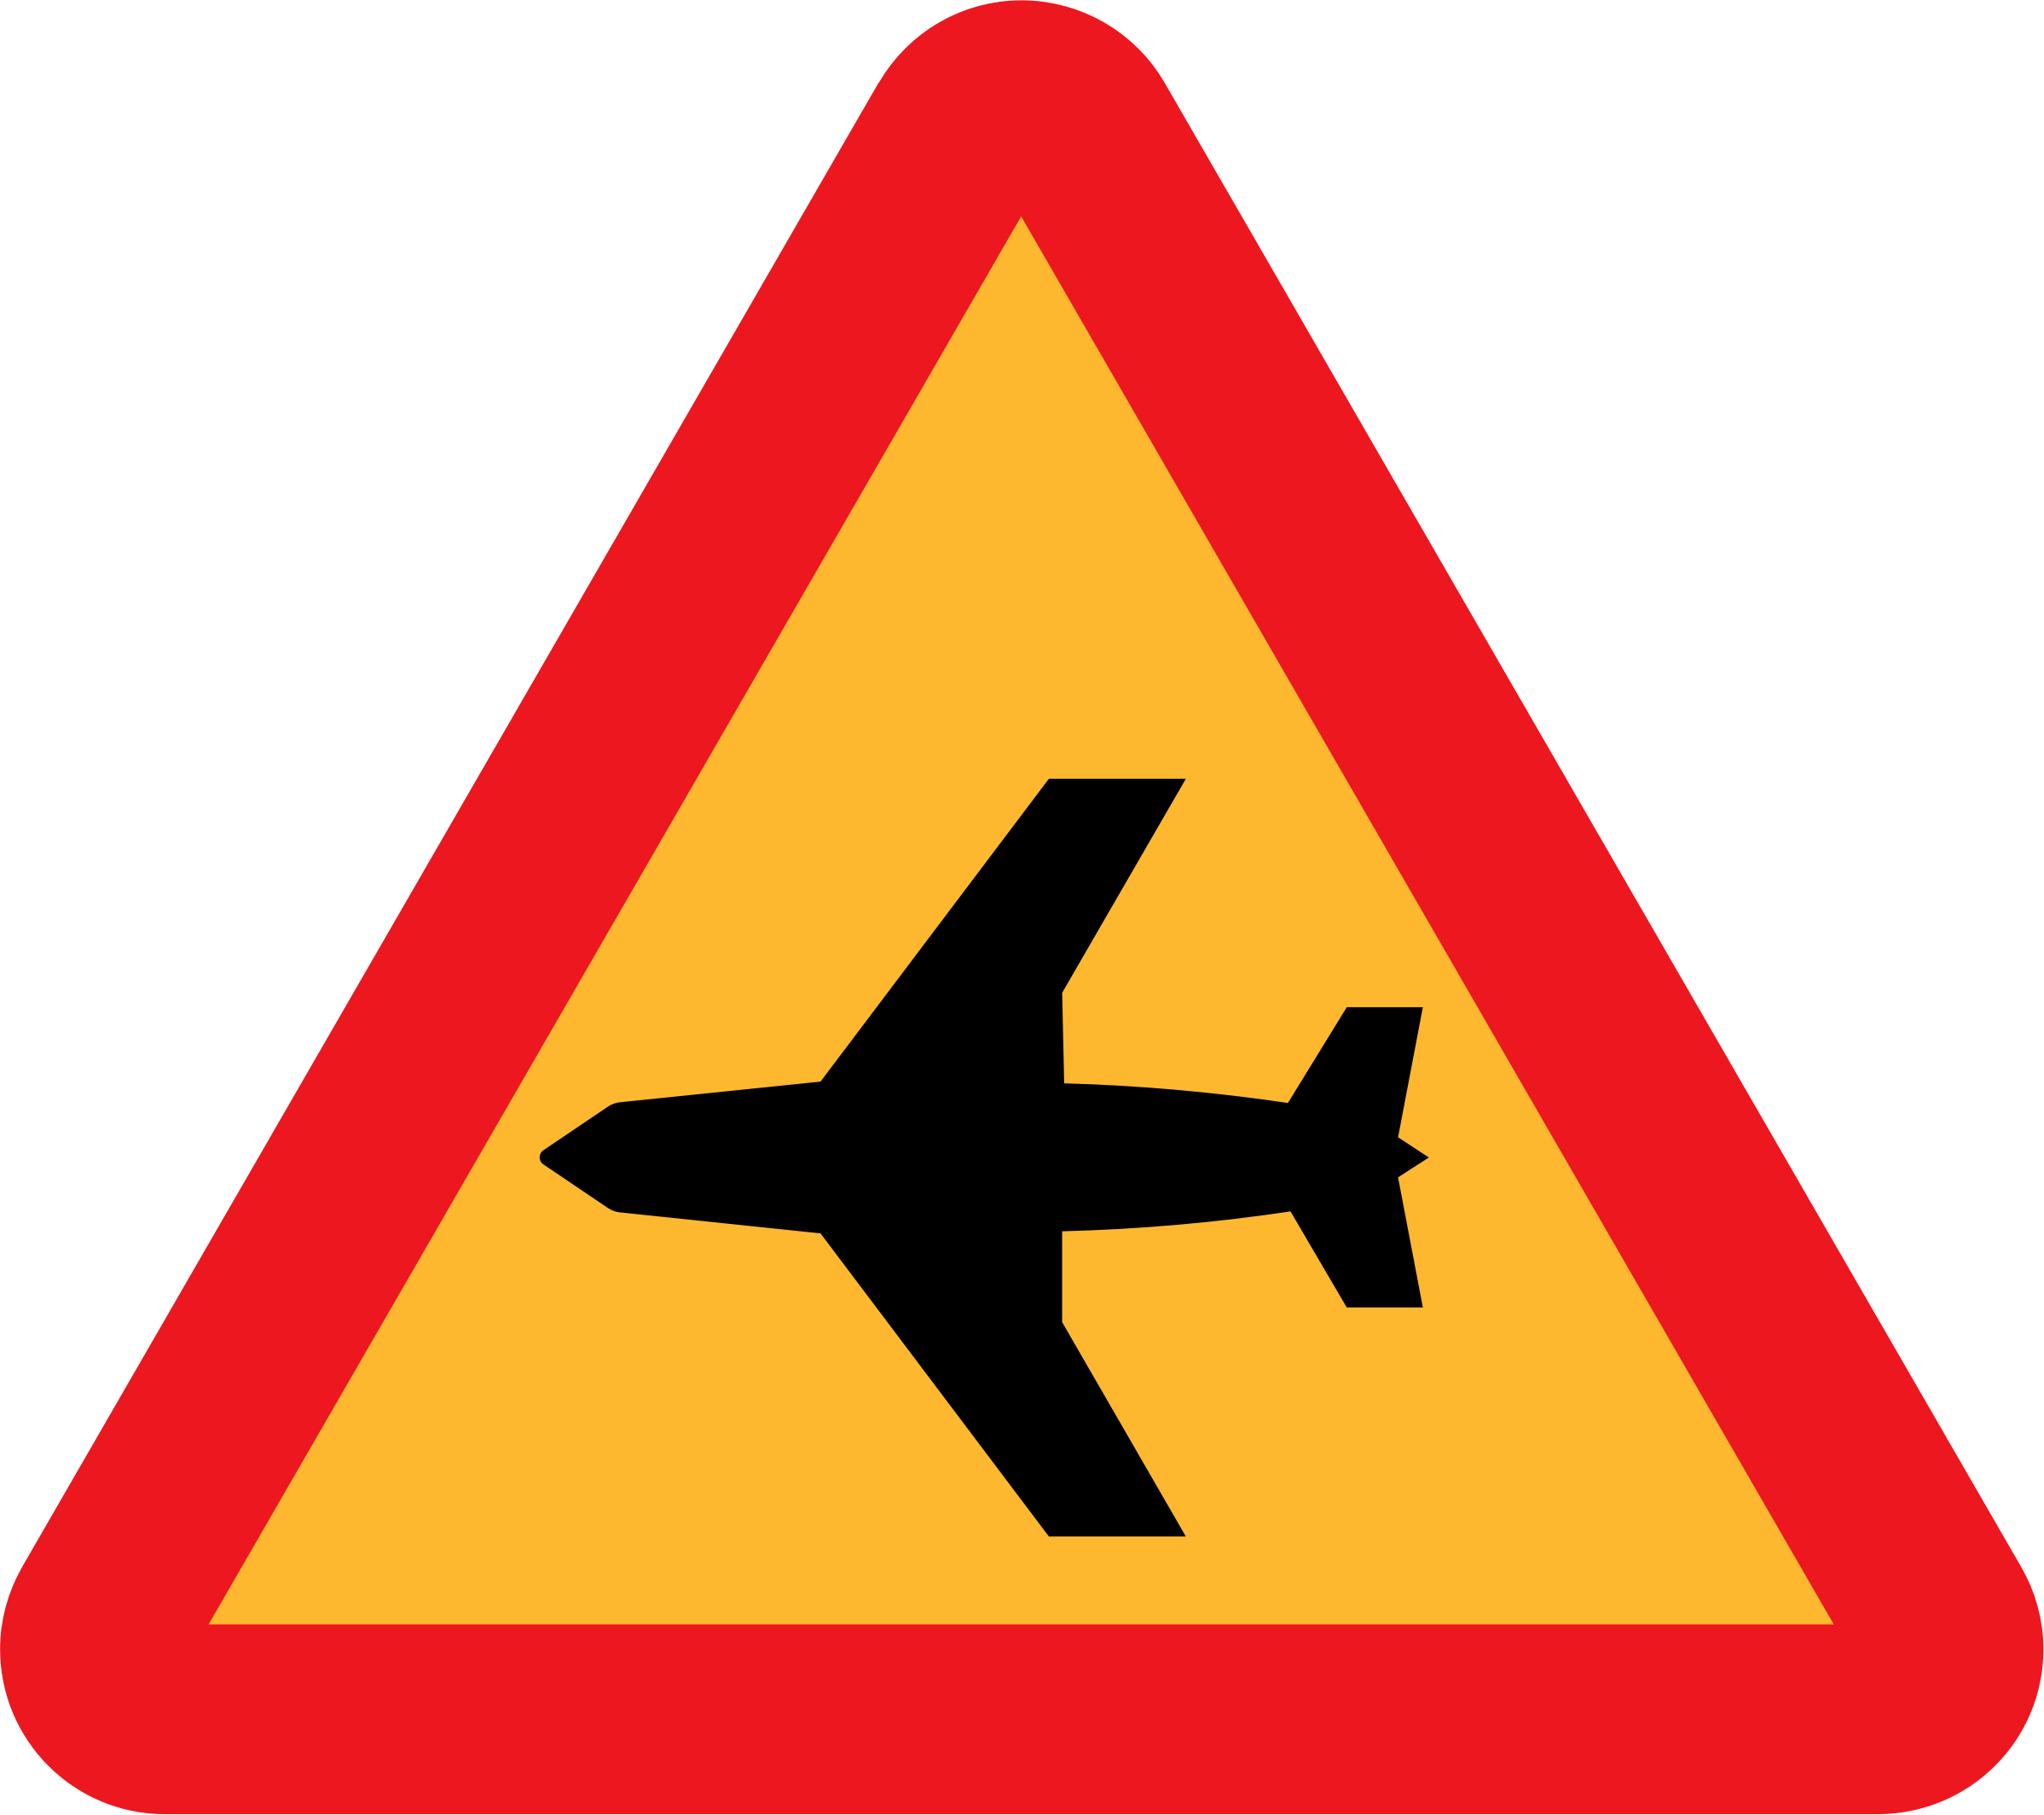 Airplane Roadsign by ryanlerch